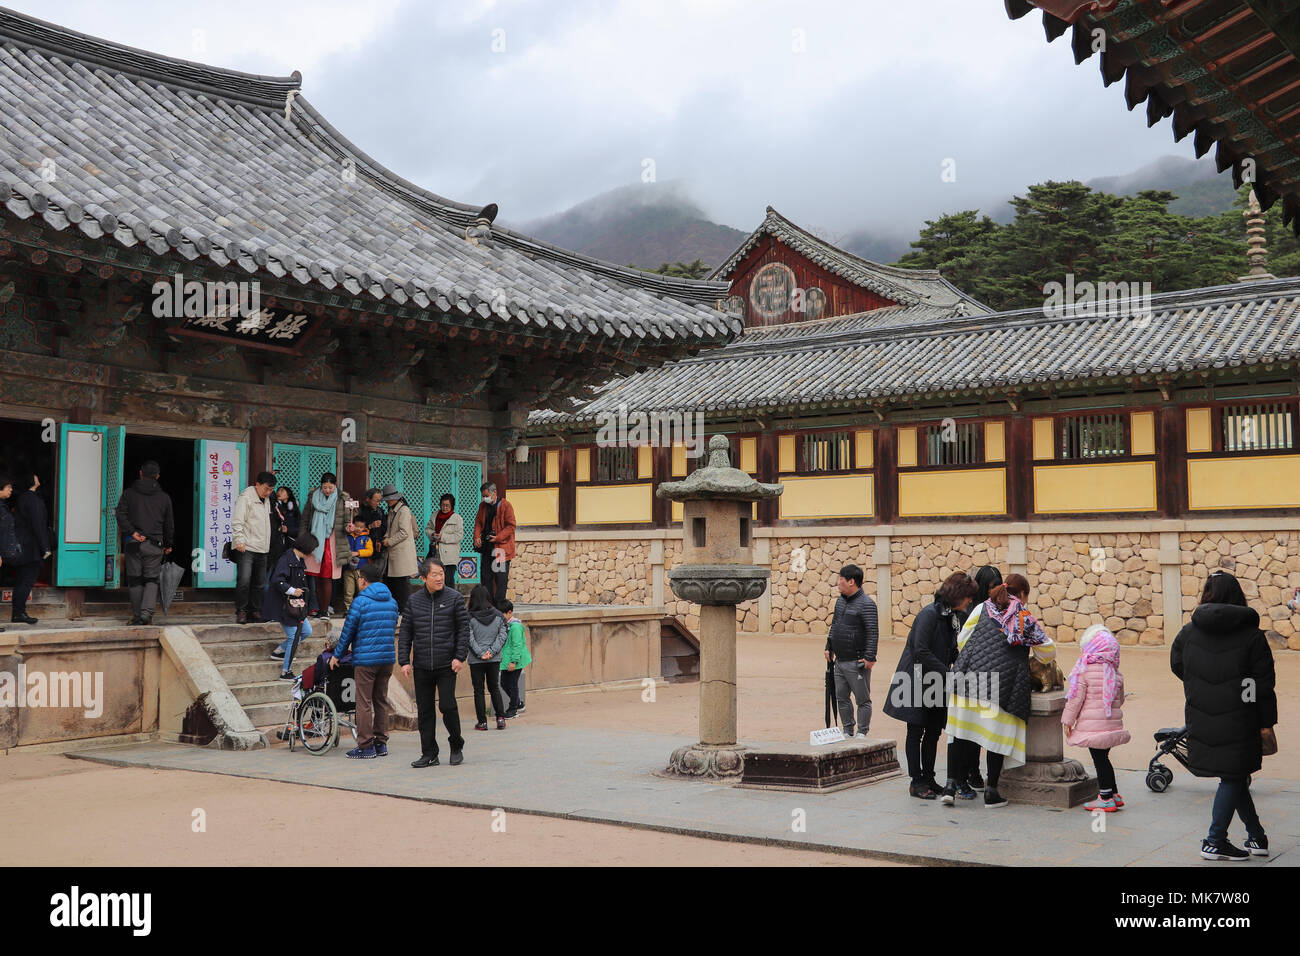 Families enjoy visiting the historic Bulguksa Temple complex in South Korea, a UNESCO site with Silla architecture, original stonework, in mountains. Stock Photo